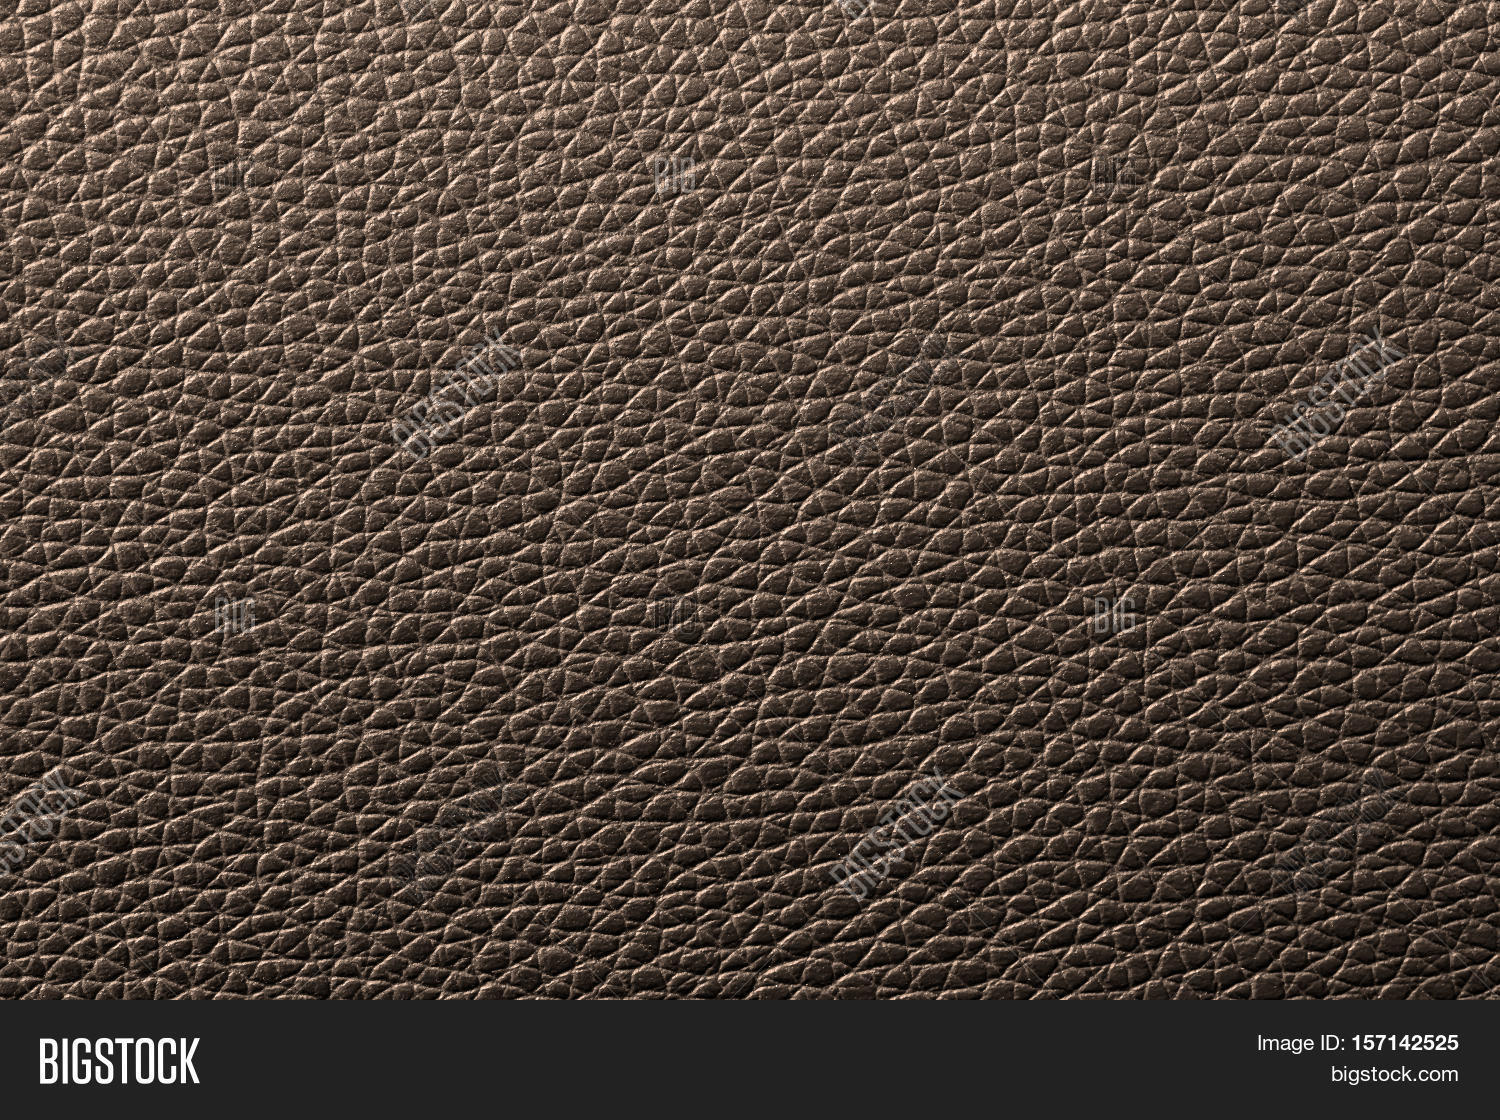 Leather jacket texture